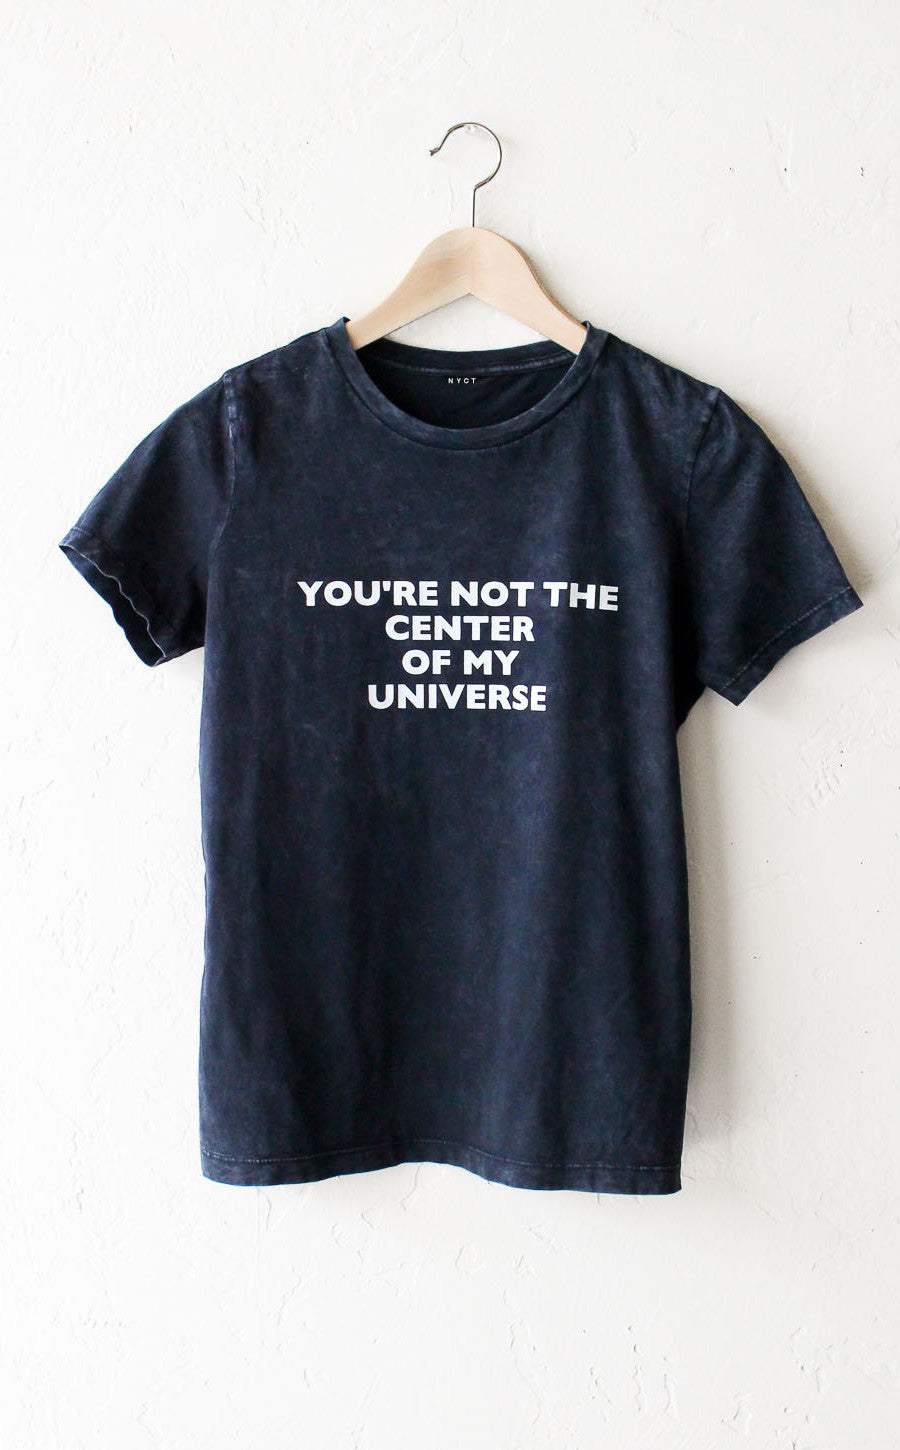 Not Clothing But Makeup Is Just As Important To Finish A: You're Not The Center Of My Universe Relaxed Tee